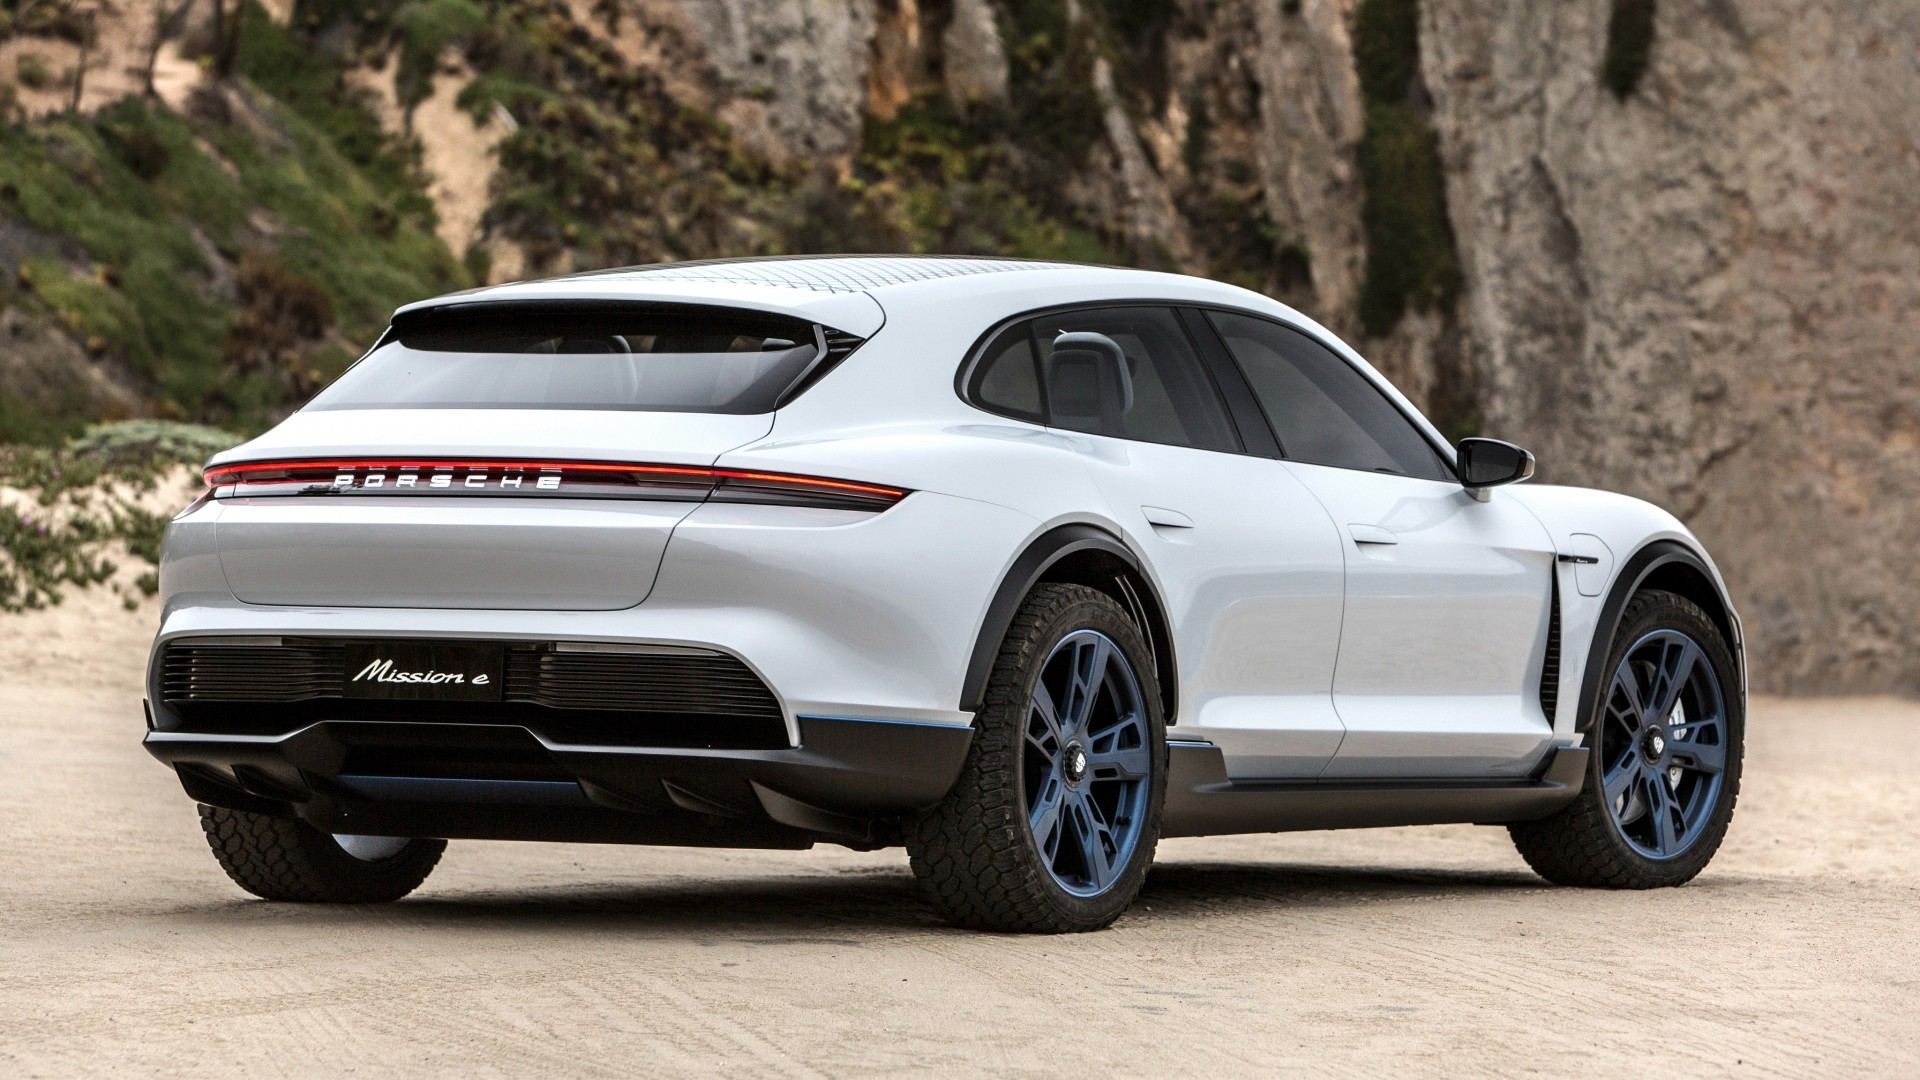 Porsche Mission E Cross Turismo 2018 4K 4 Wallpaper | HD ...